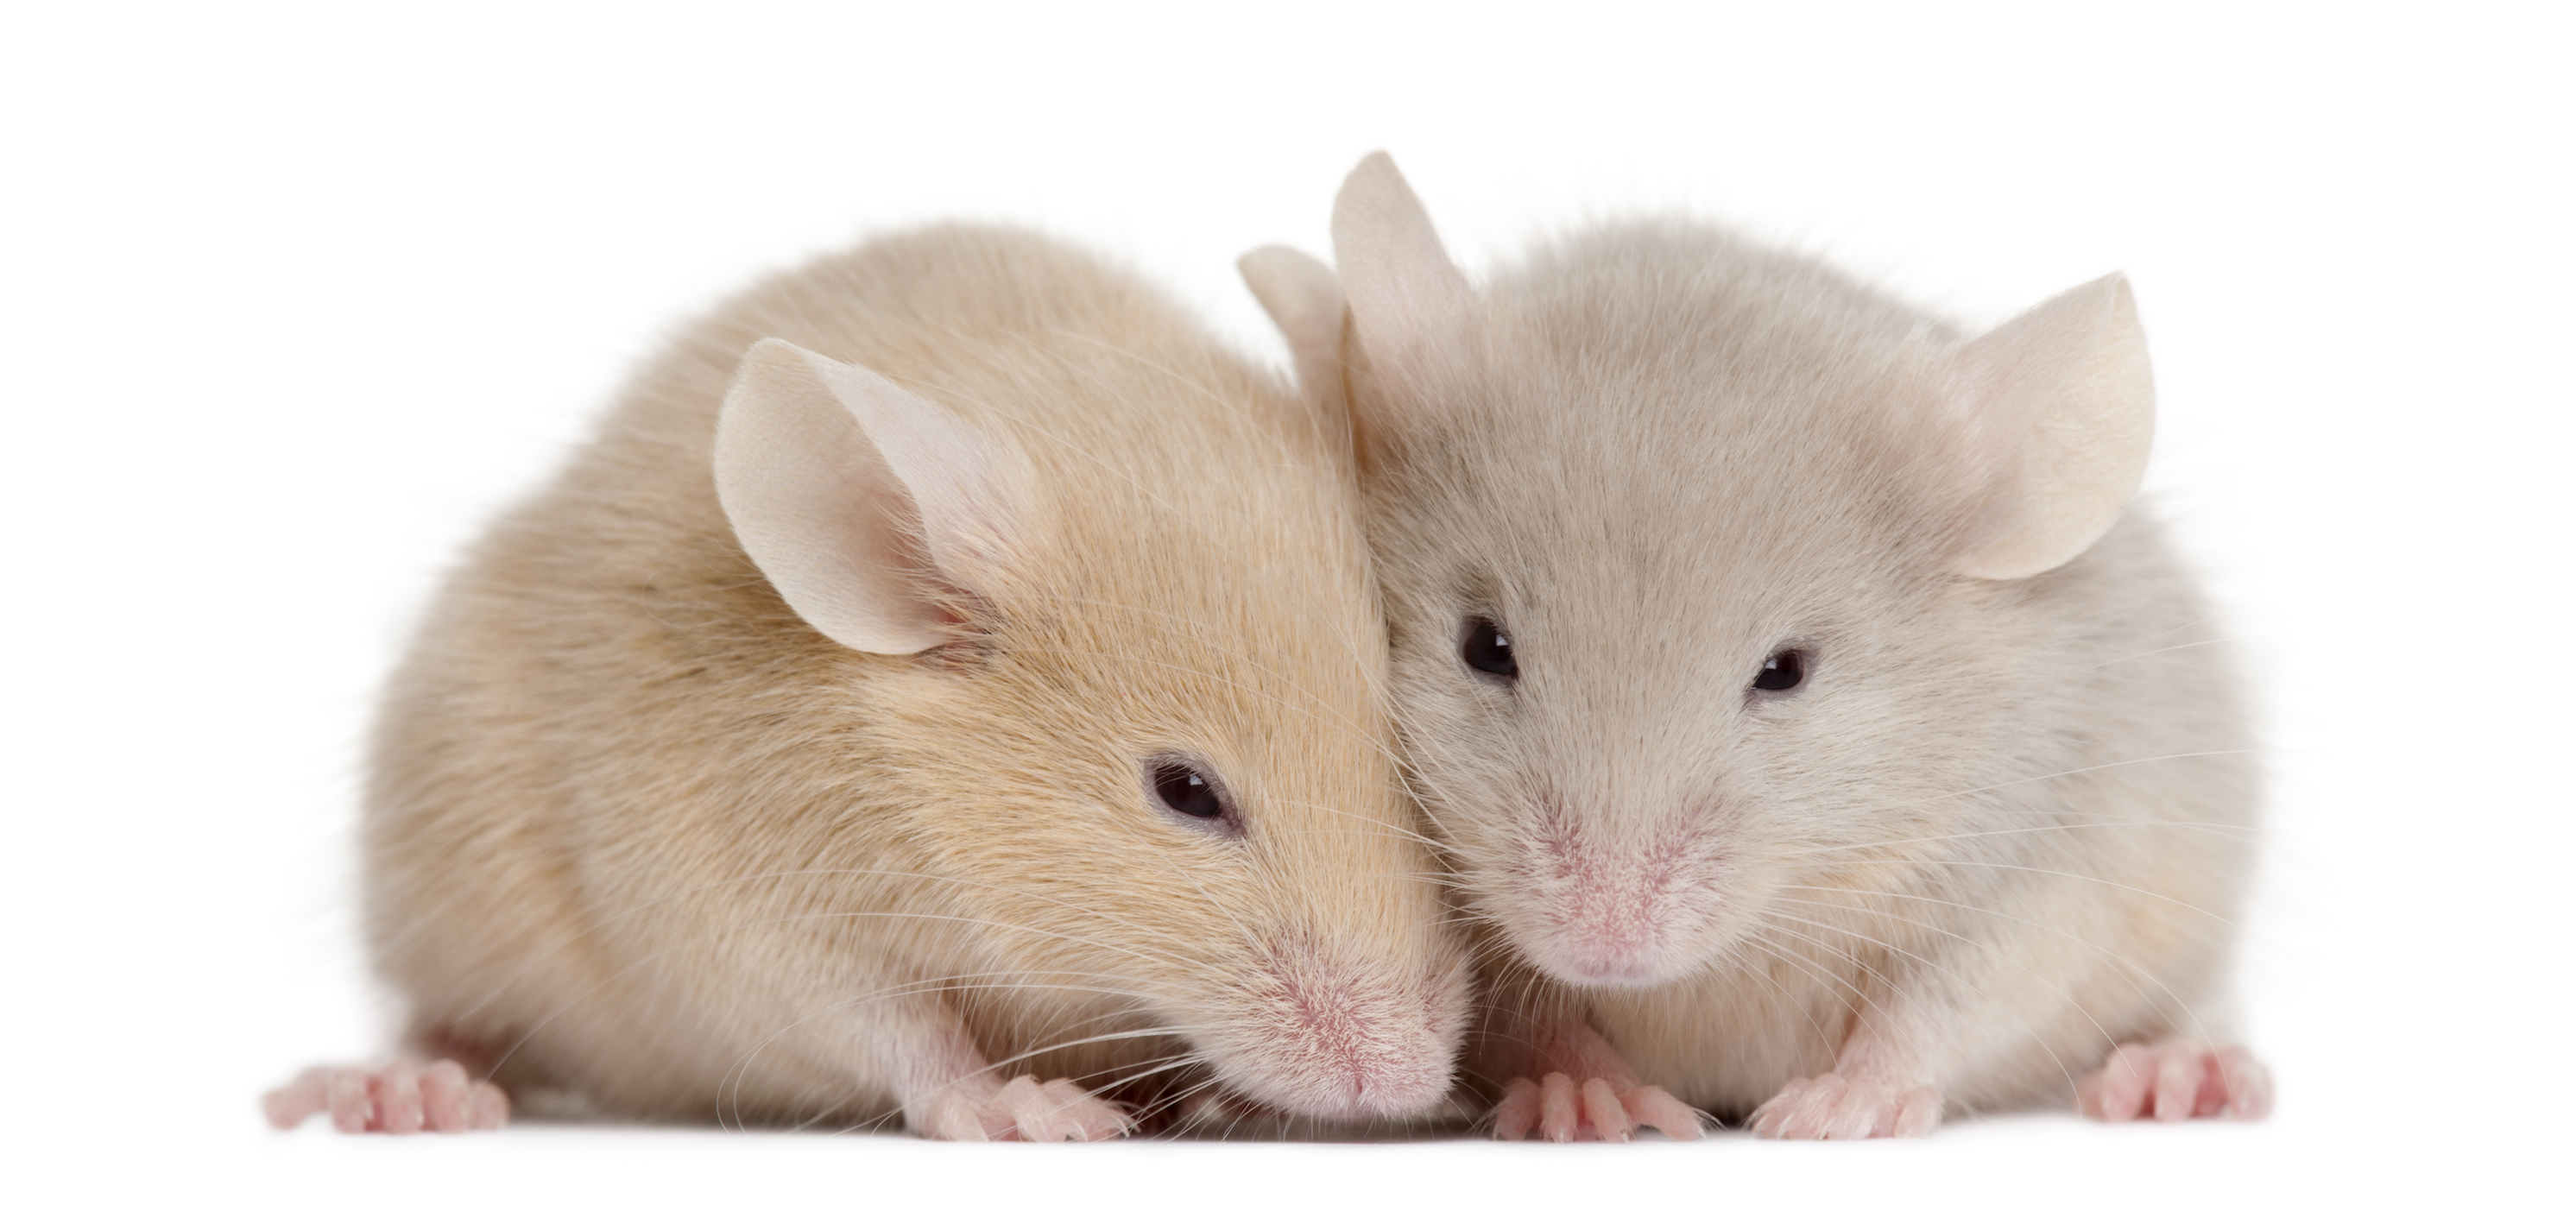 Humans are able to experience empathy for the pain of other humans. But could mice be capable of this as well?